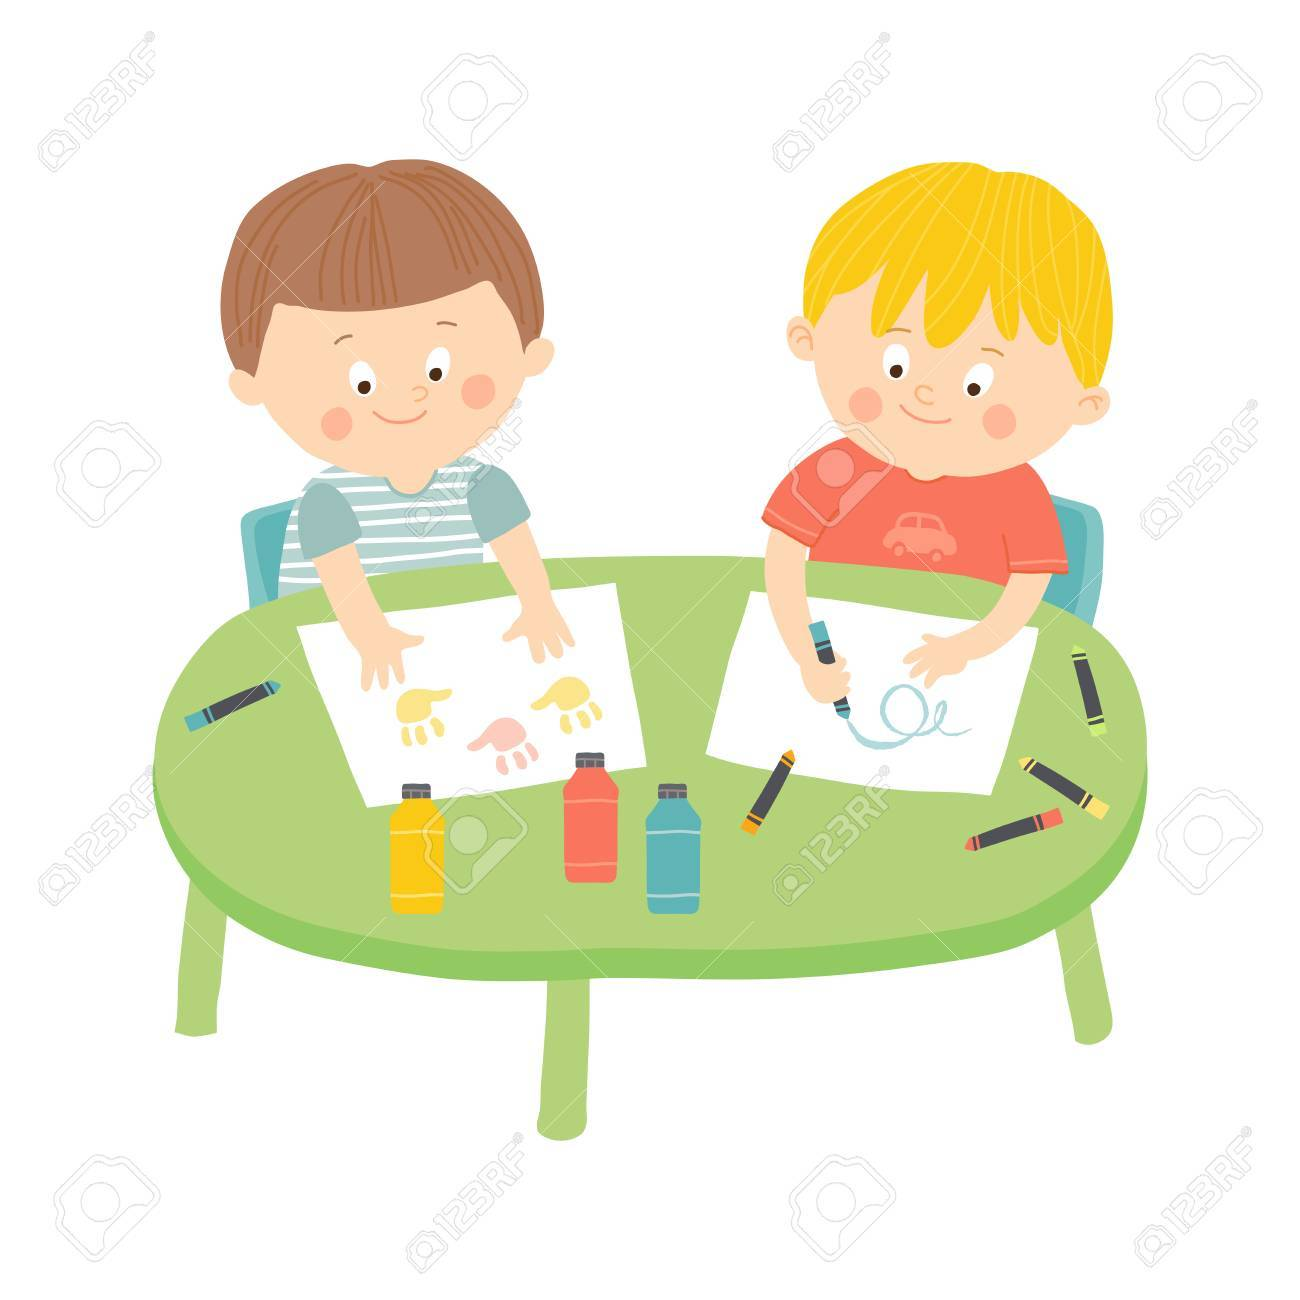 Children Drawing Clip Art at GetDrawings.com | Free for personal use ...